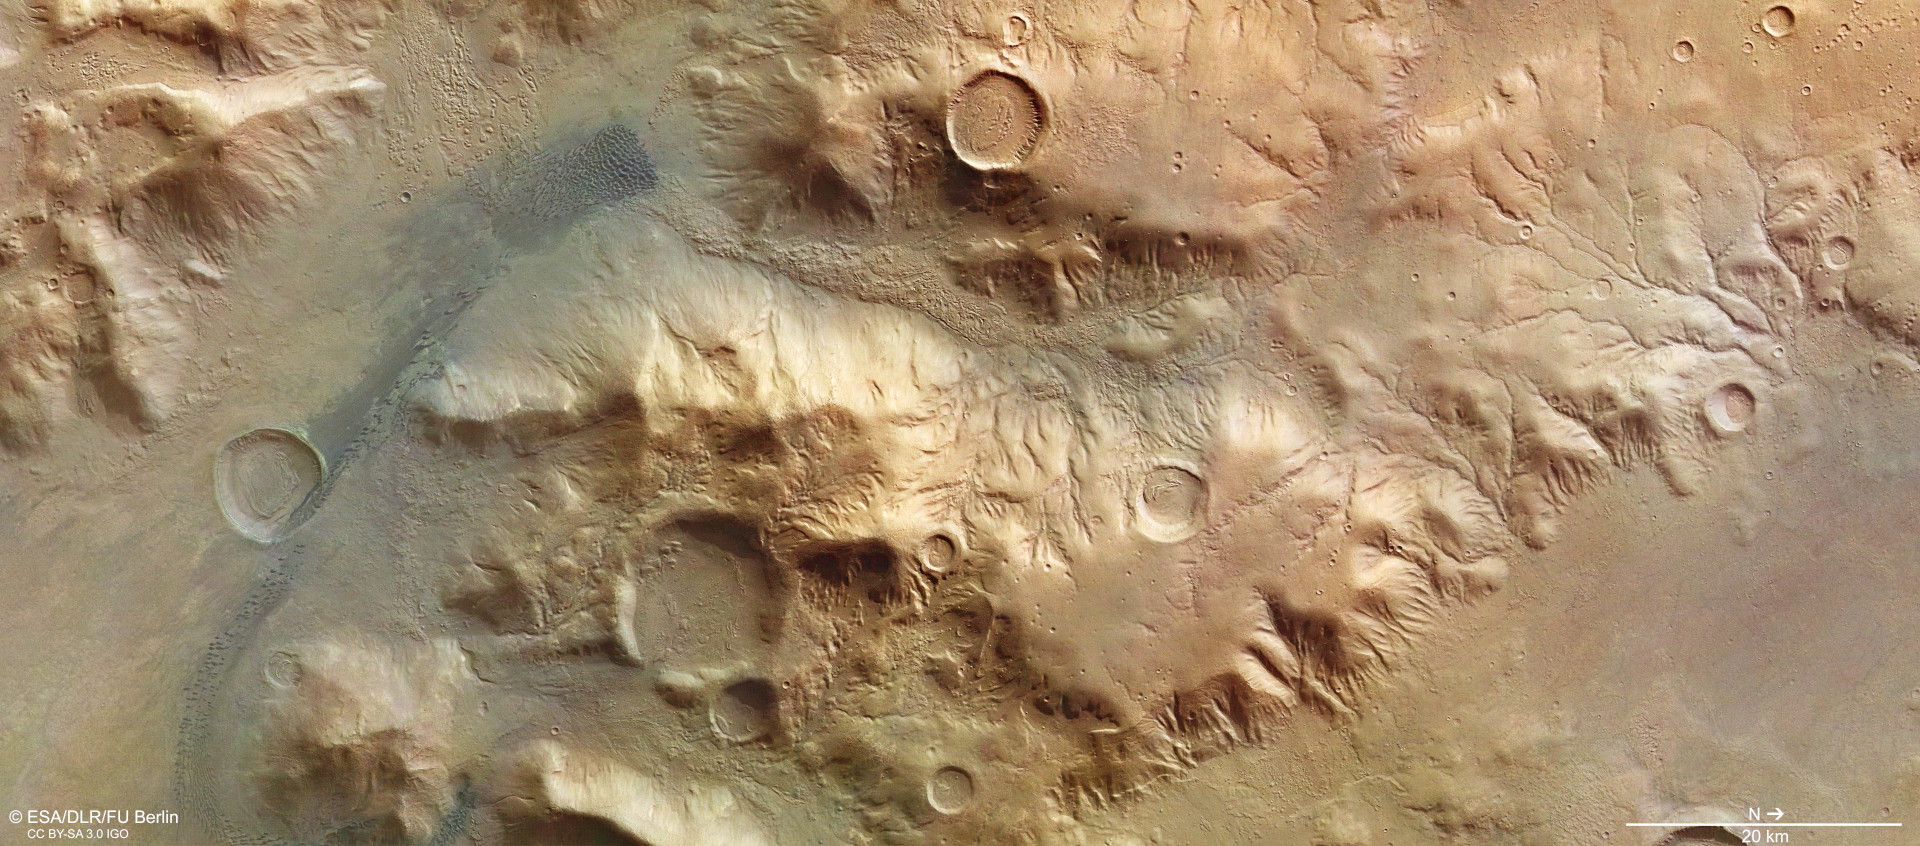 European Mars Orbiter Captures Views Of Landslide On Red Planet While Mapping Surface For Water Rich Sites